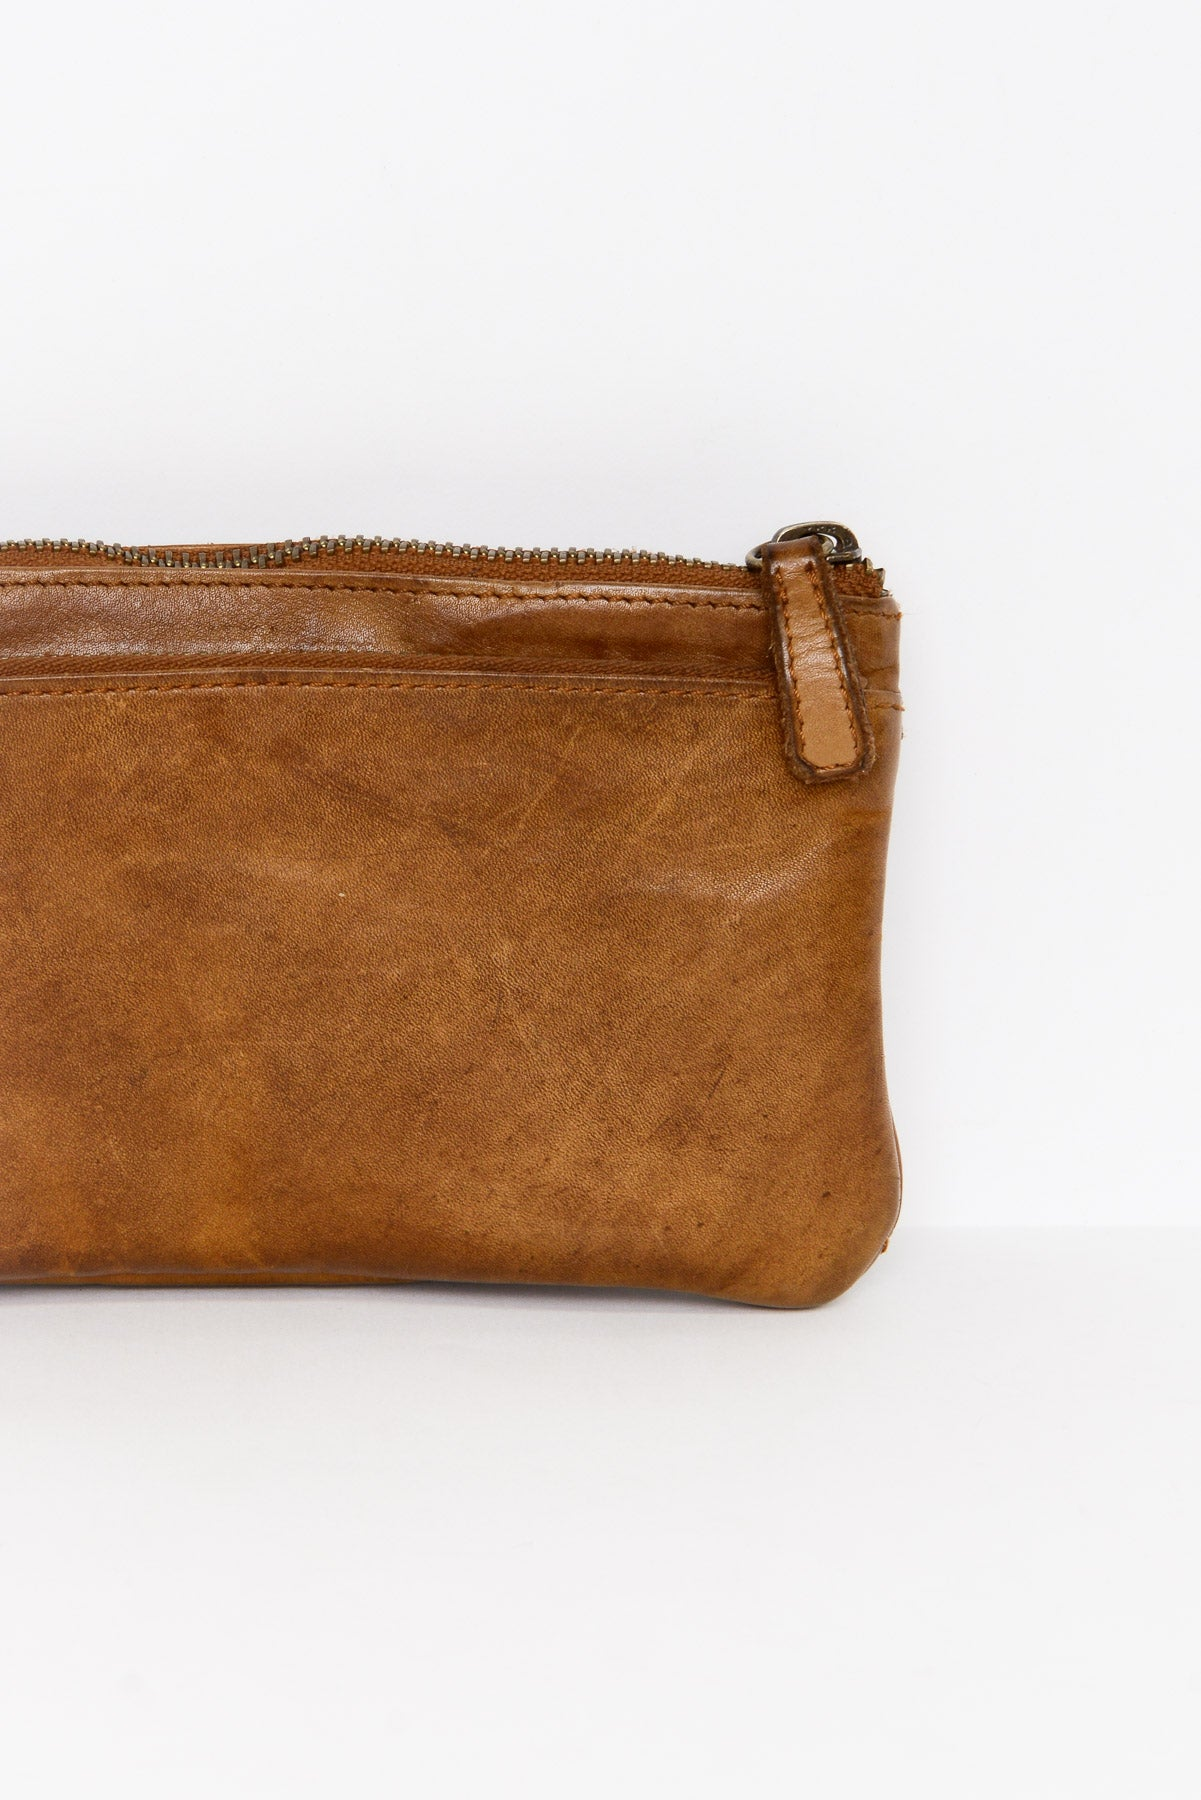 Bonnie Cognac Leather Wallet - Blue Bungalow